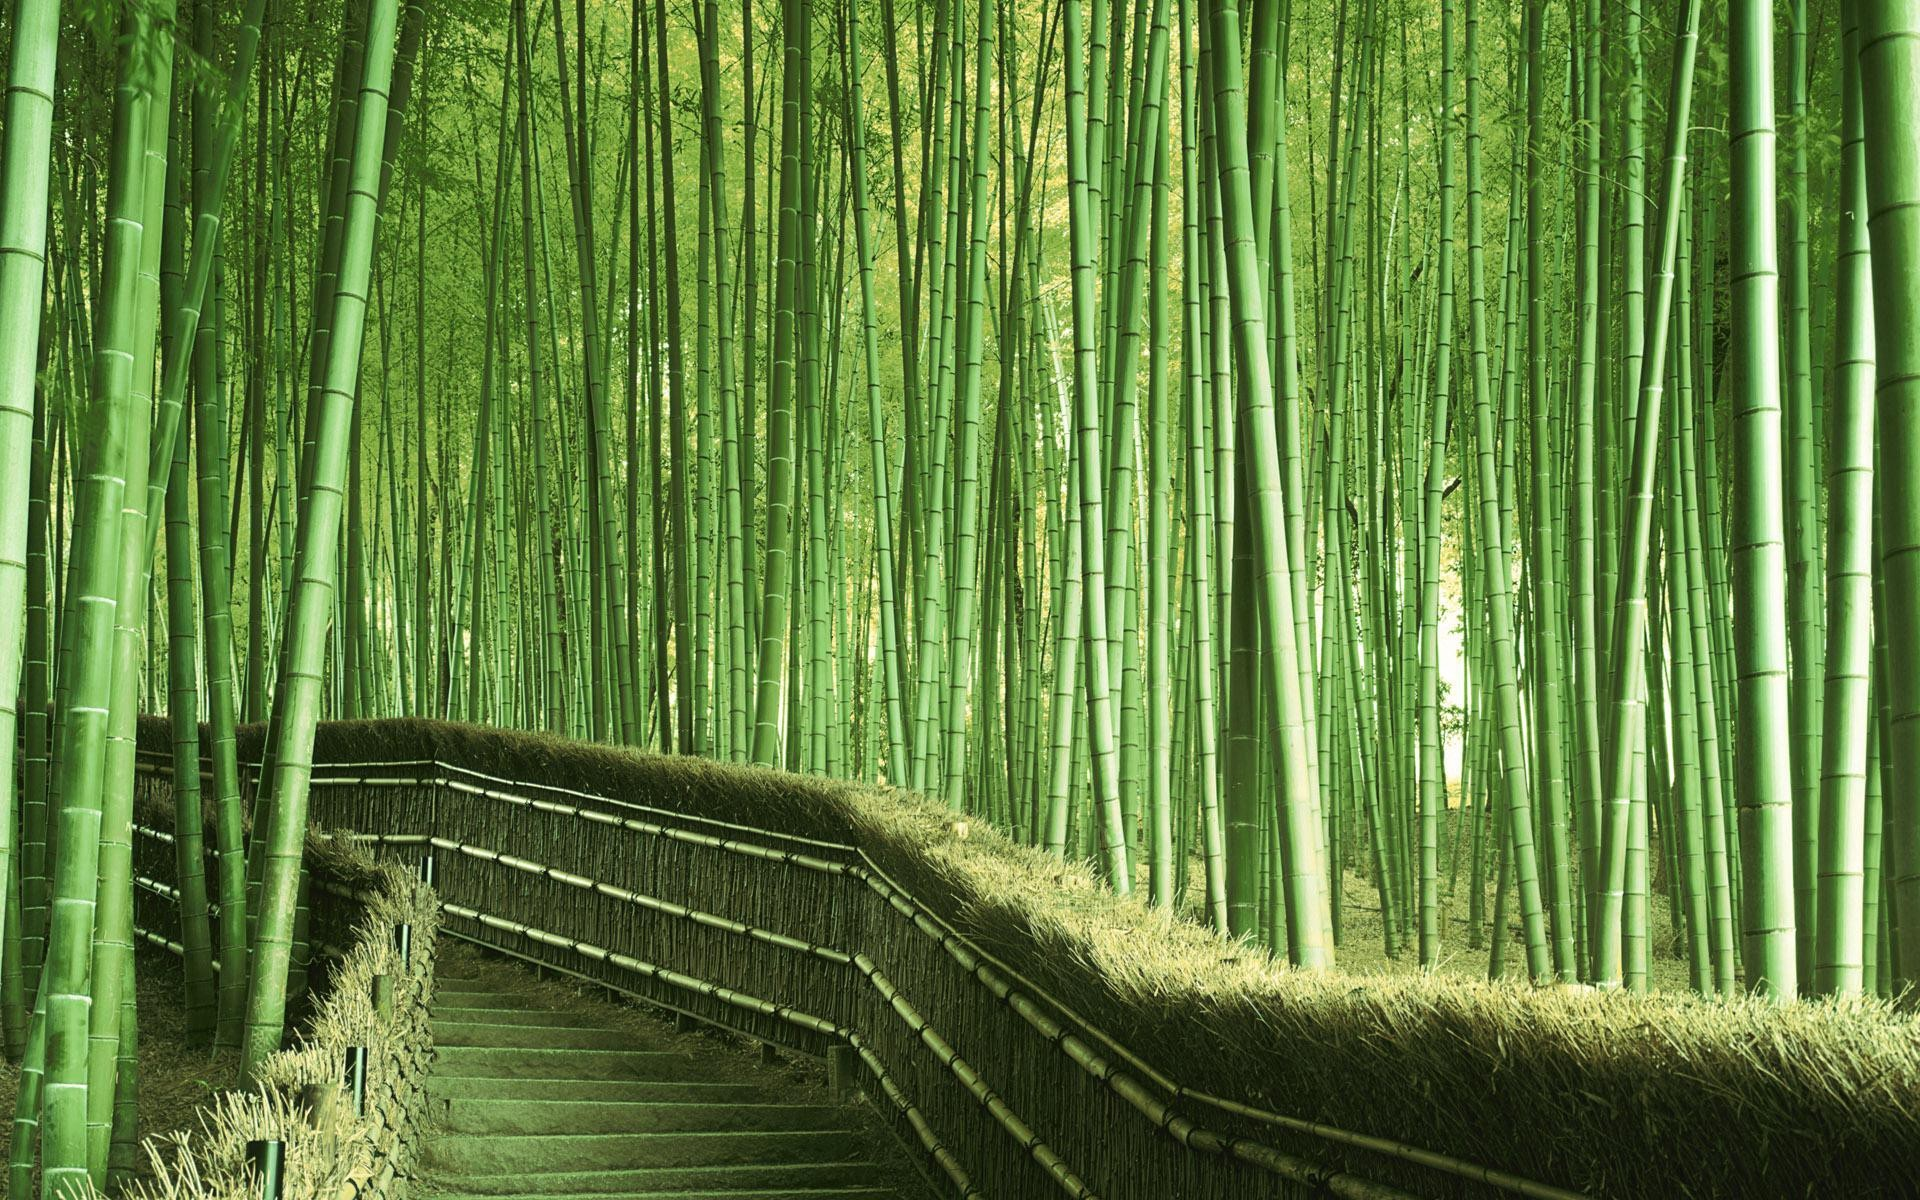 1920x1200 HD Bamboo High Quality Wide Desktop Wallpaper For Background Free